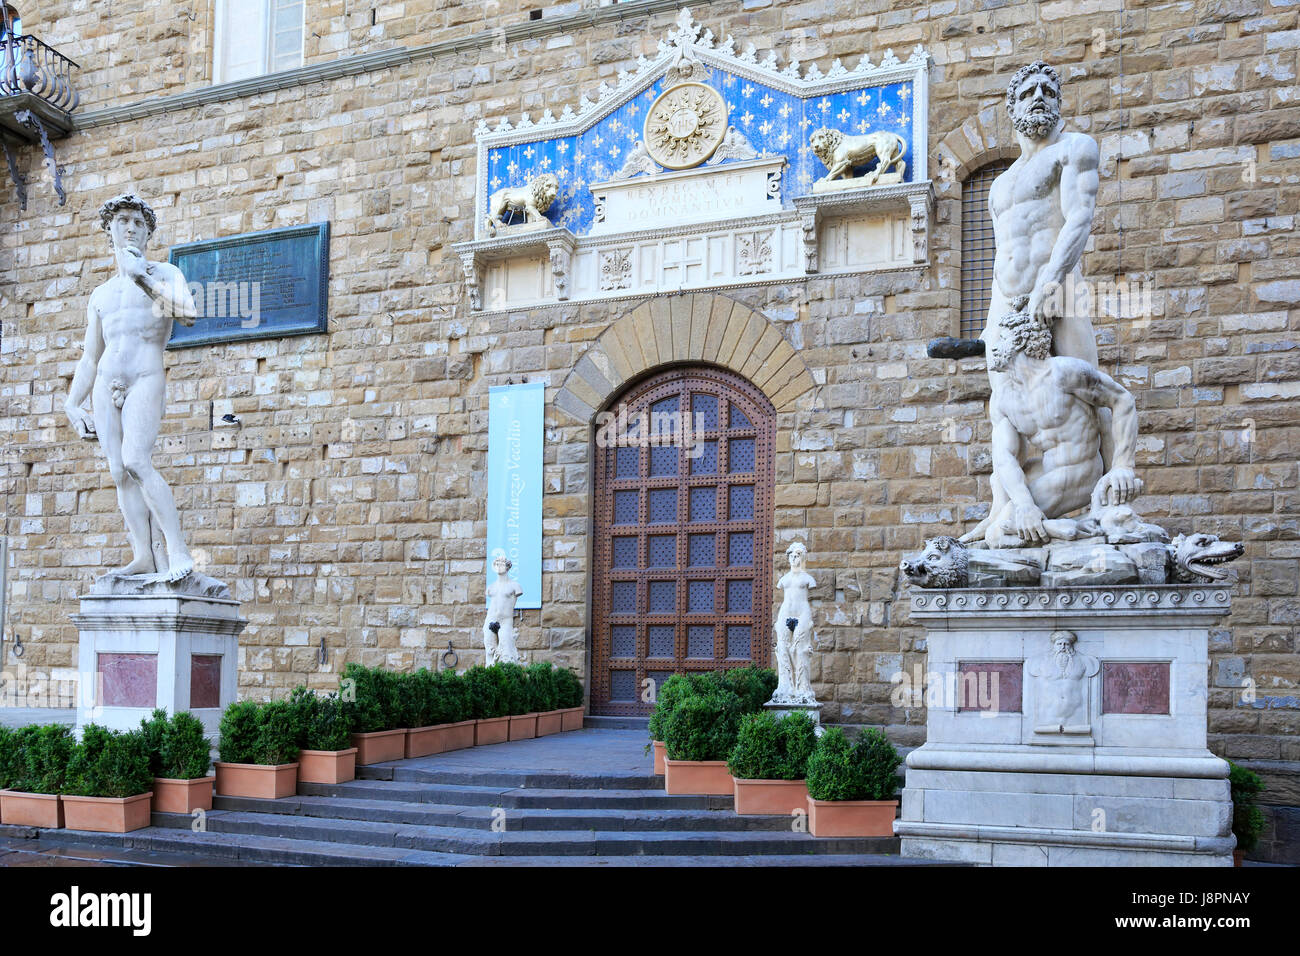 Palazzo Vecchio entrance with frontispiece and statues, Florence, Tuscany, Italy, Europe. - Stock Image